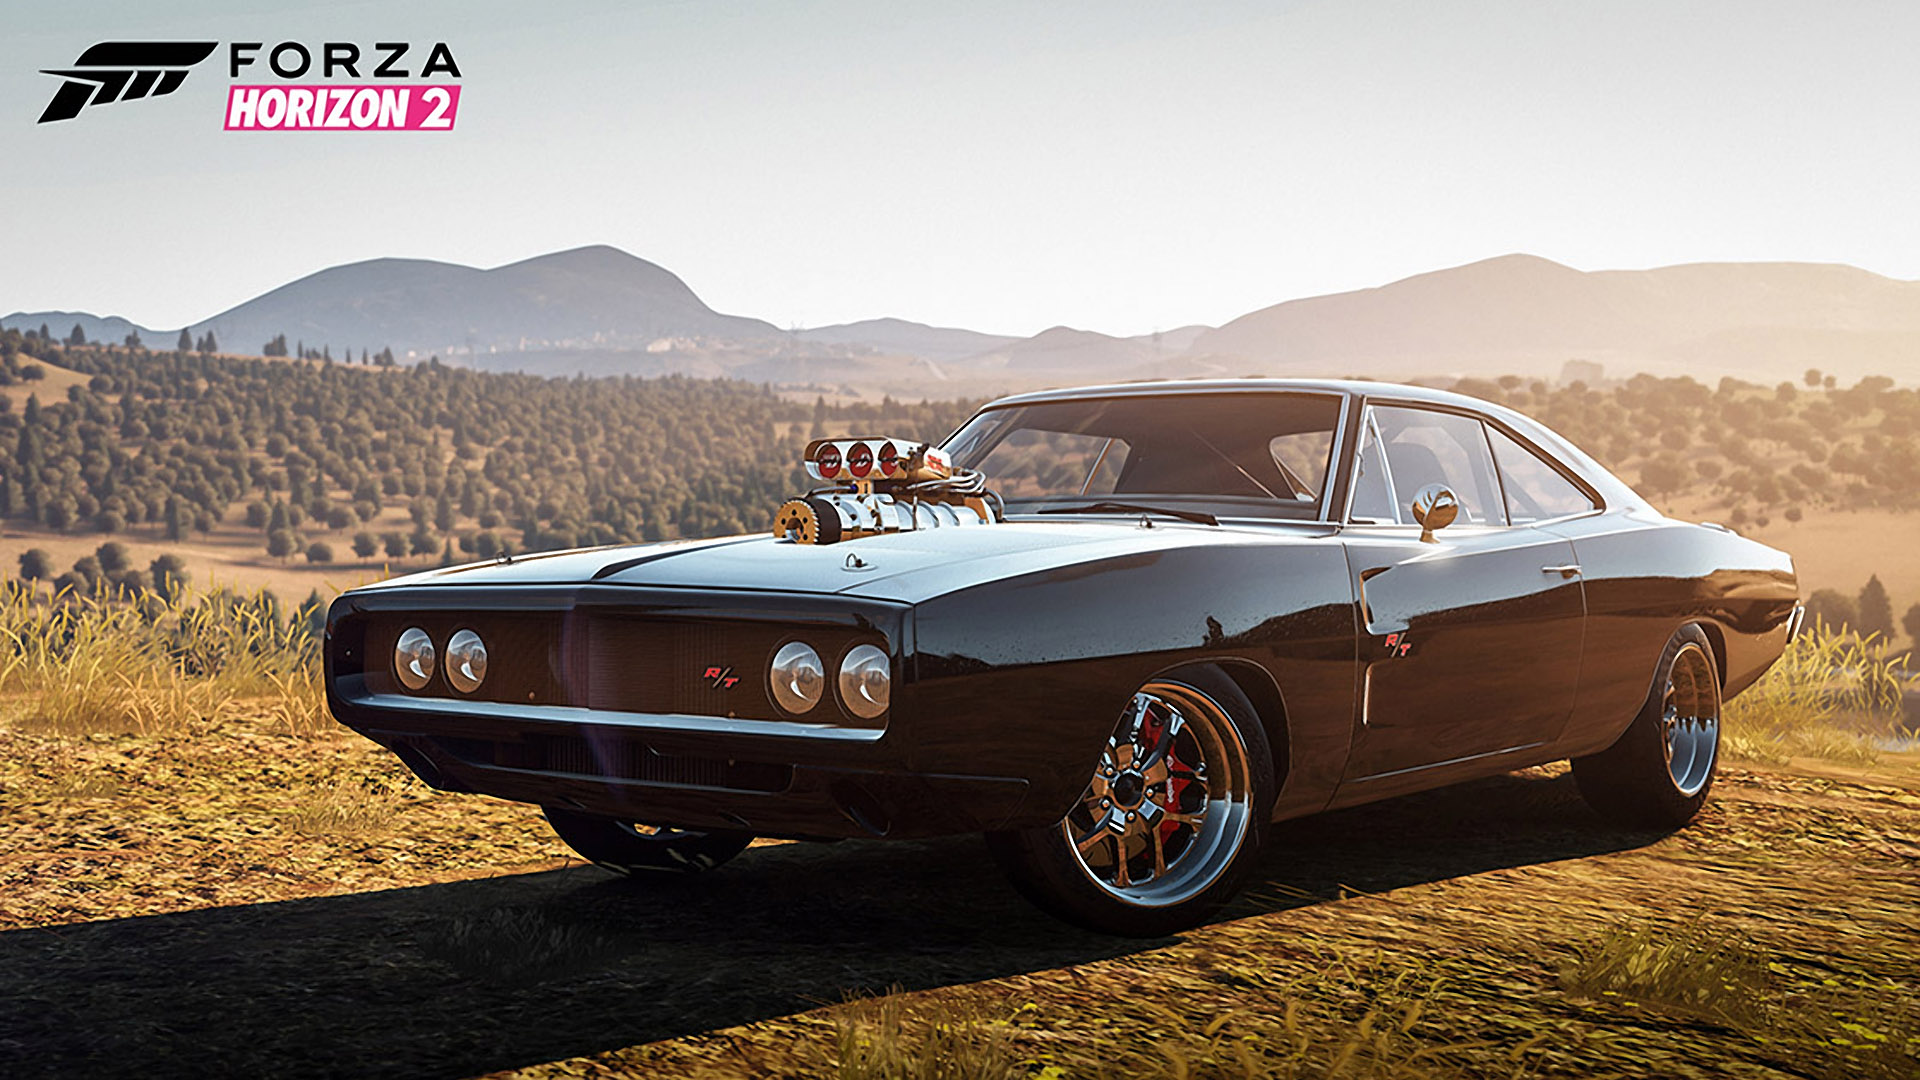 1970 Dodge Charger R T Forza wallpapers